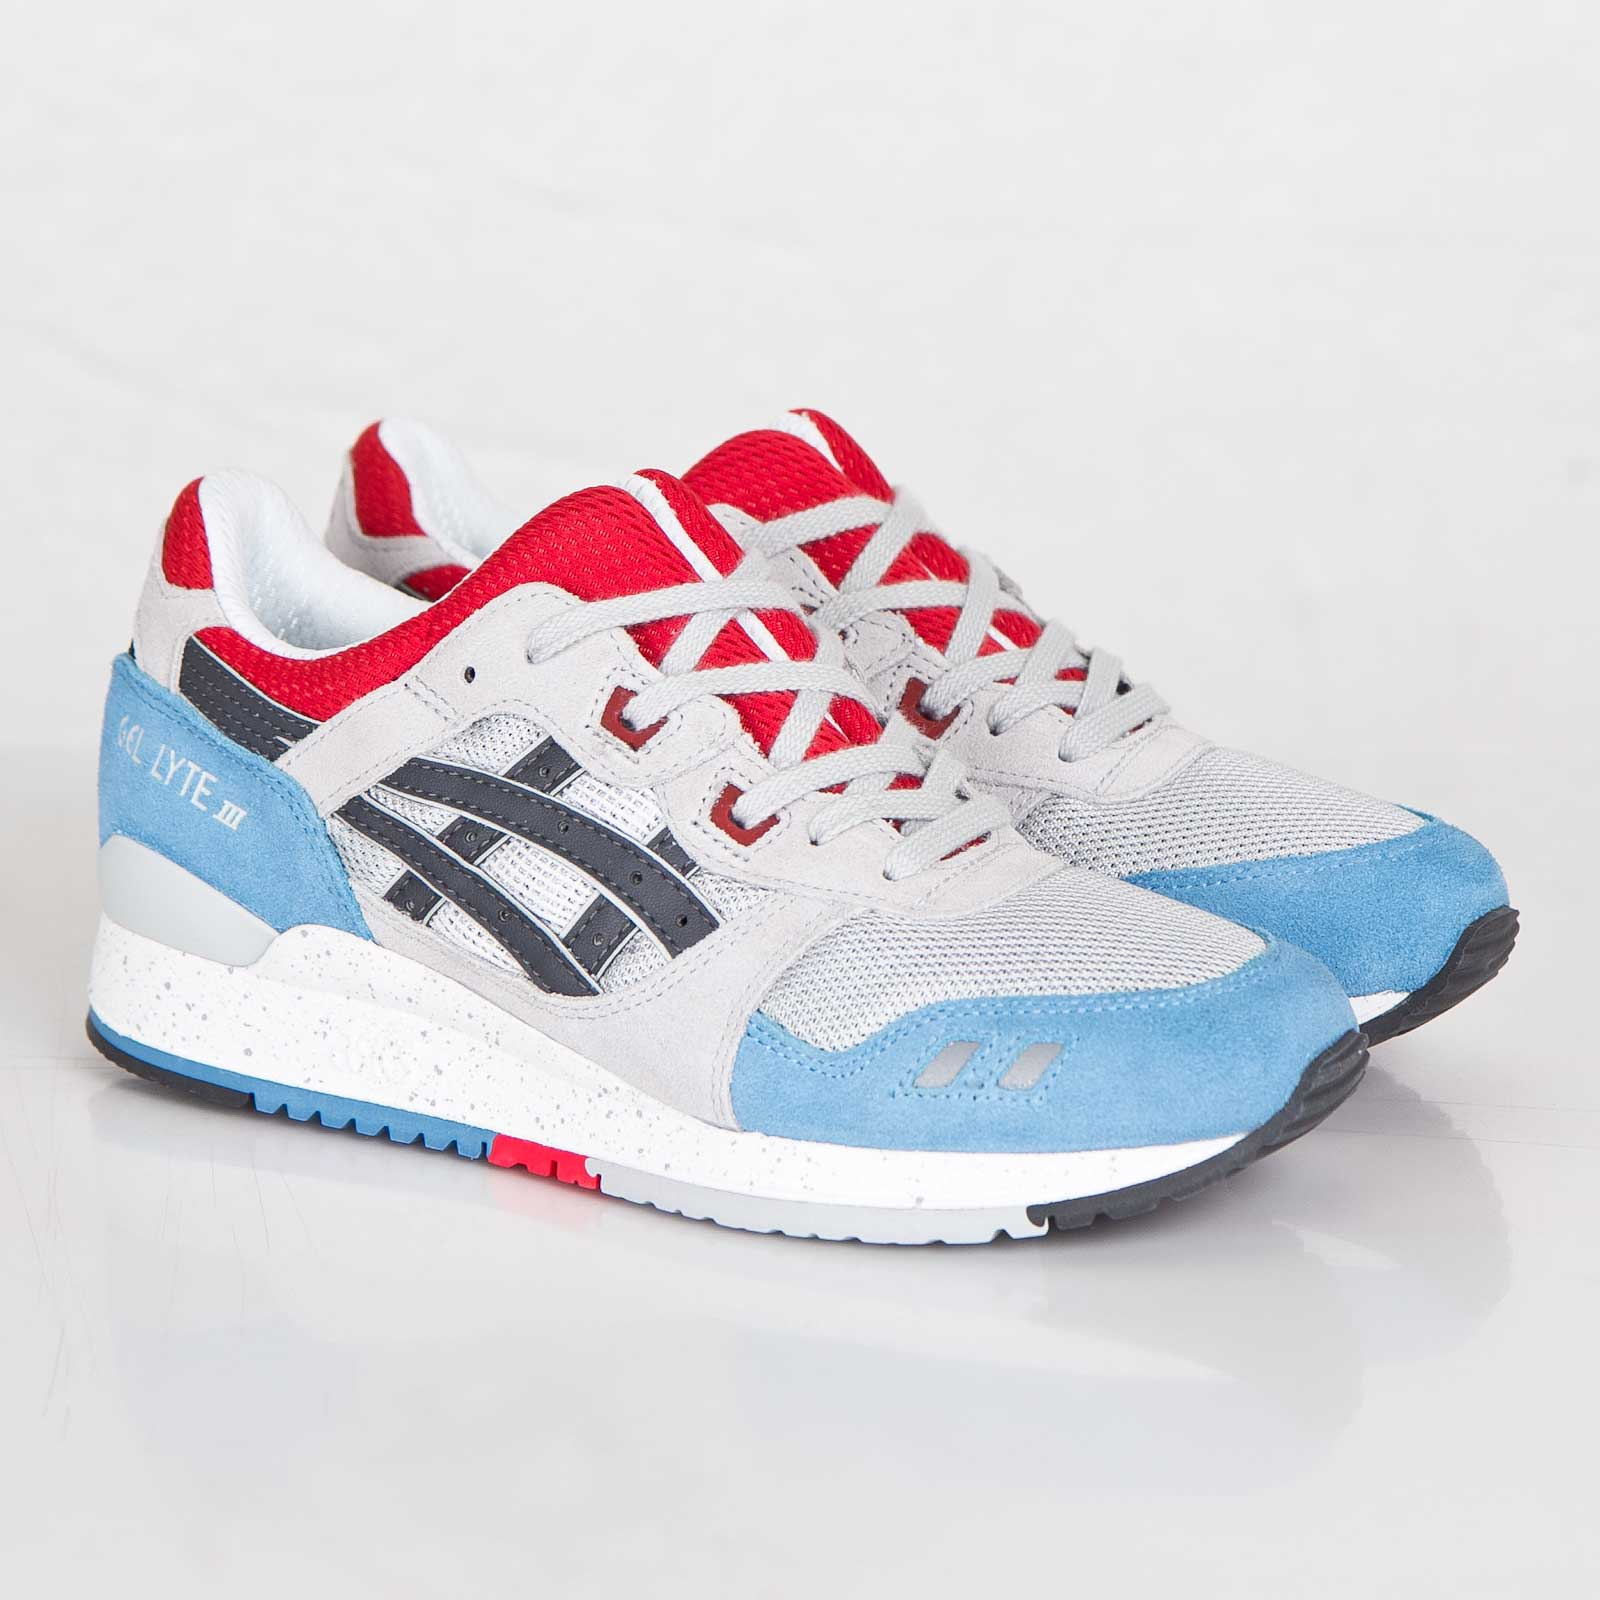 new product a256a 188ed ASICS Tiger Gel-Lyte III - H425n-1016 - Sneakersnstuff ...